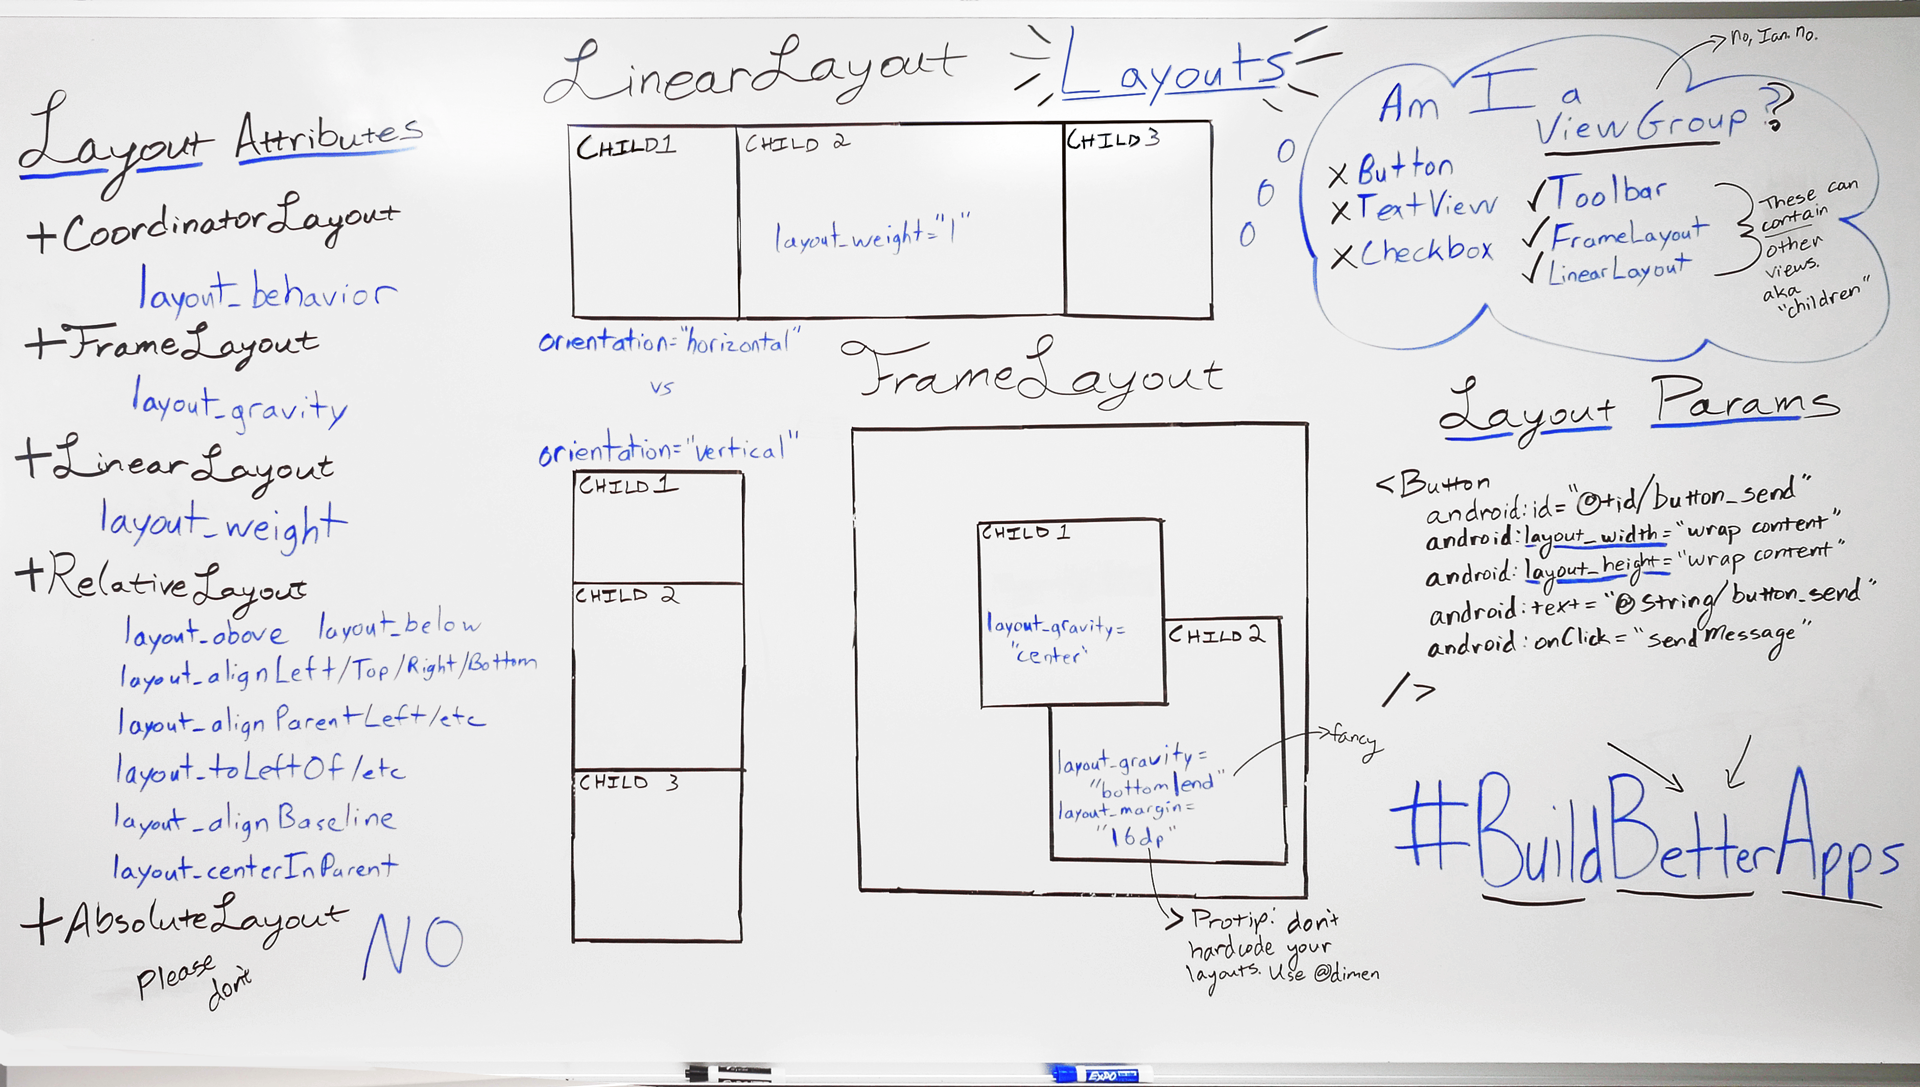 Layouts, Attributes, and you